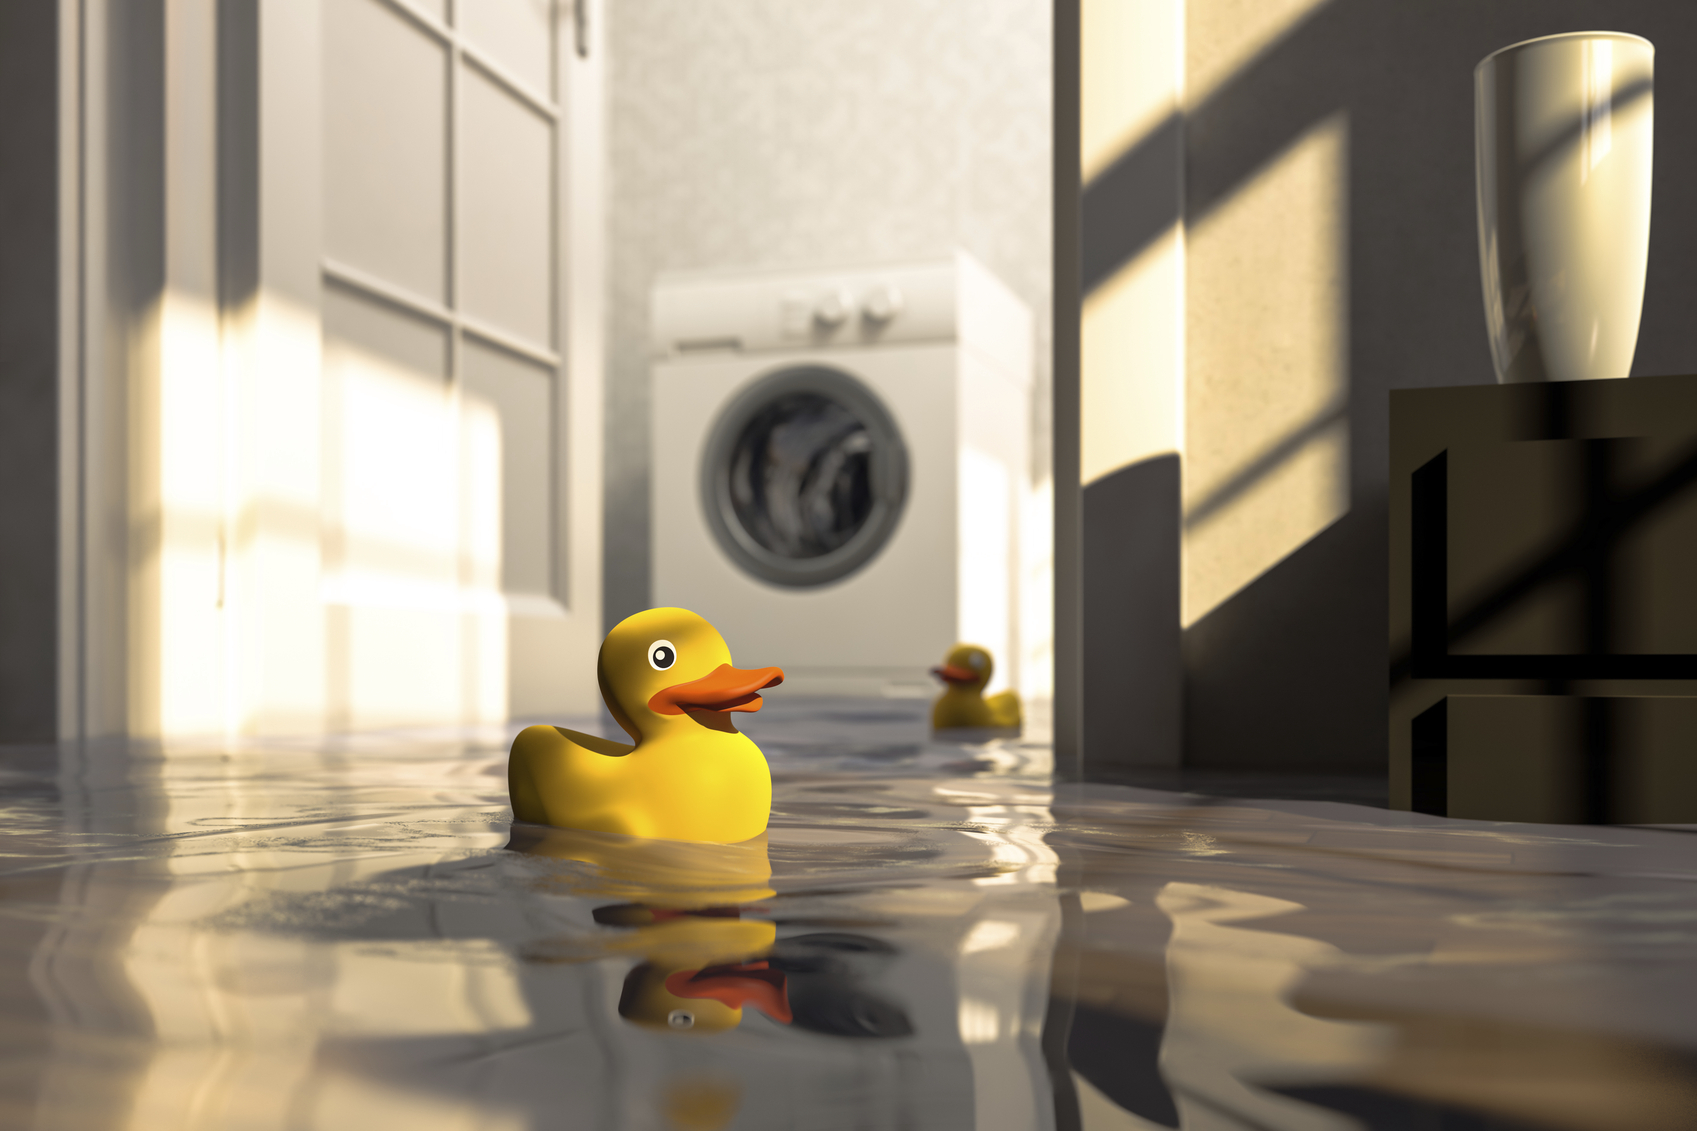 Water damage caused by defective washing machine and rubber ducks ...